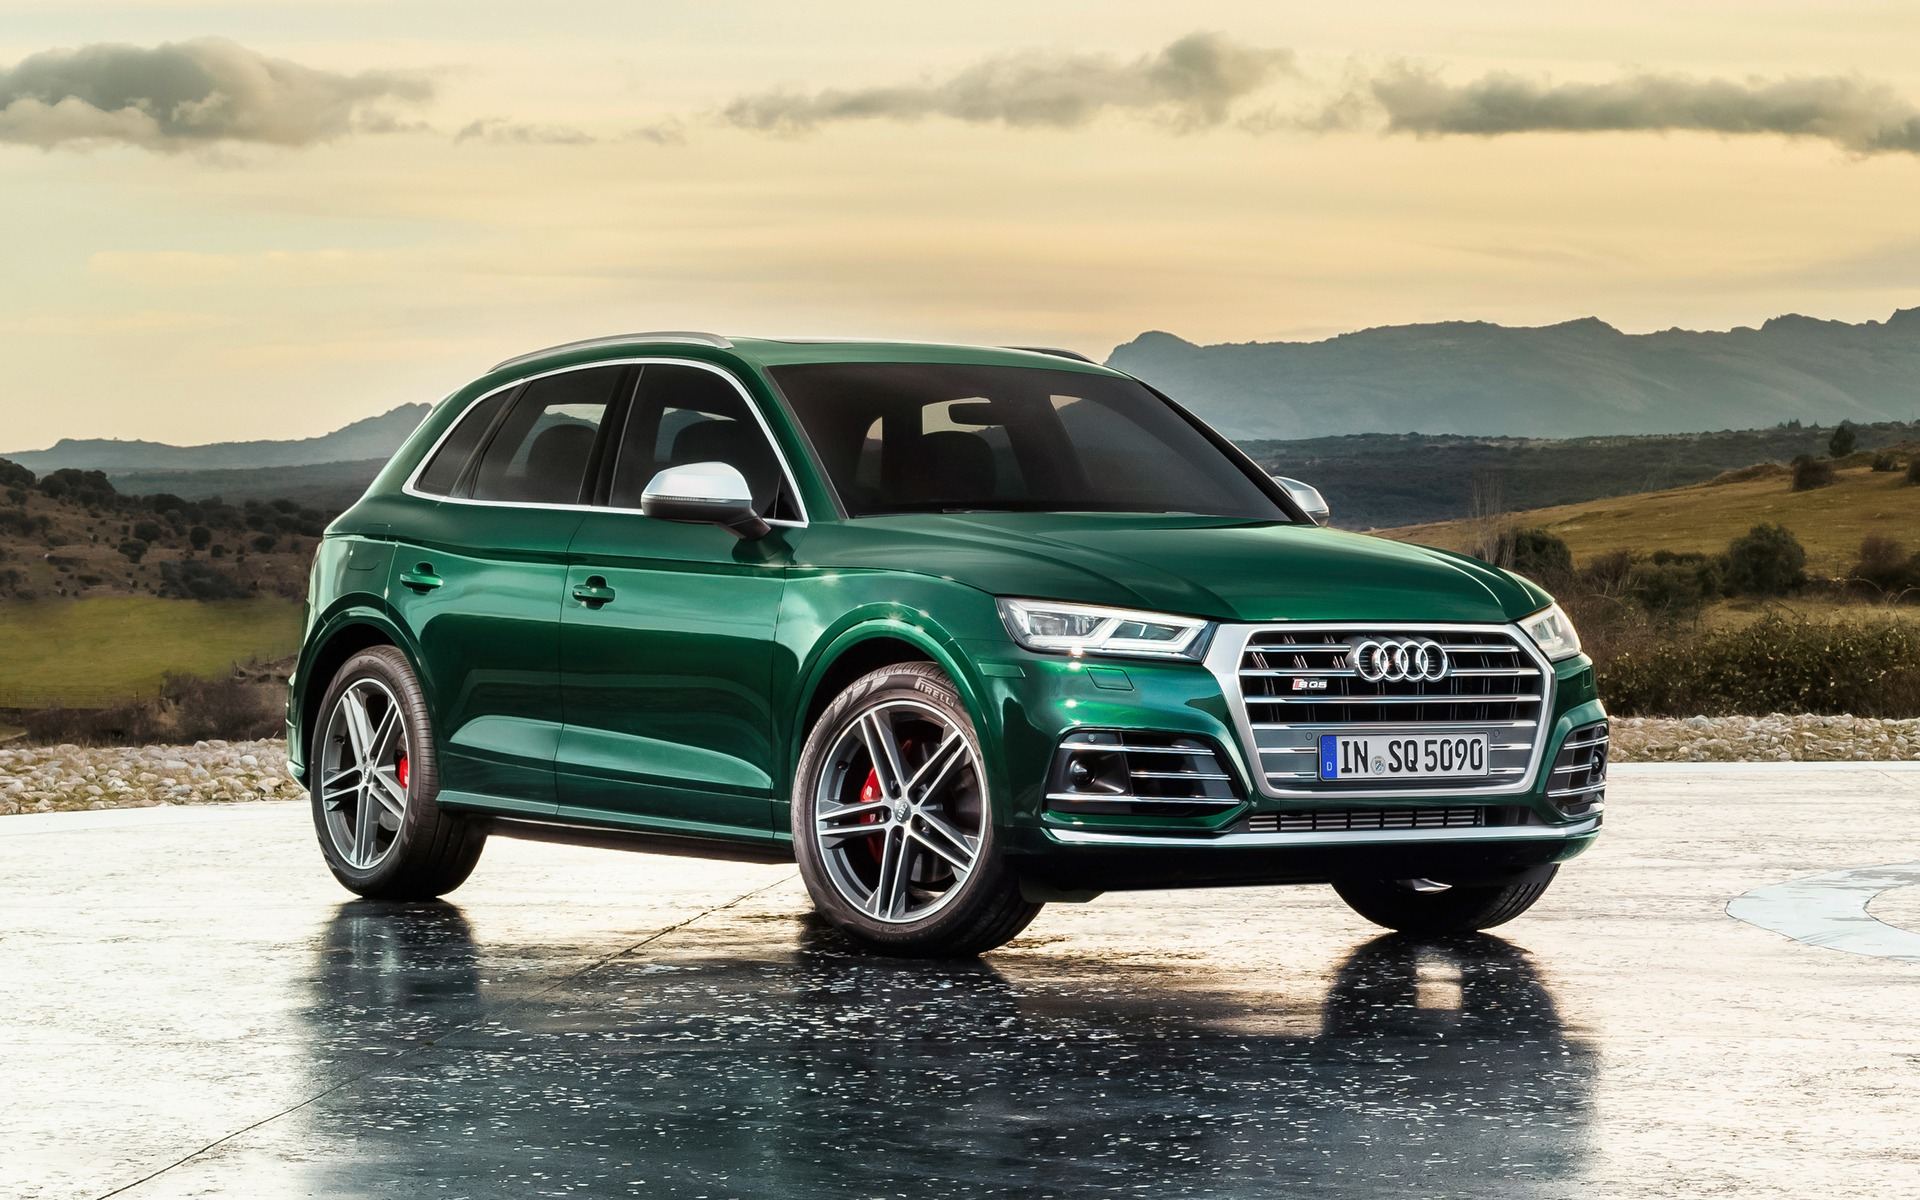 Five Things to Know About the 2019 Audi Q5 - The Car Guide